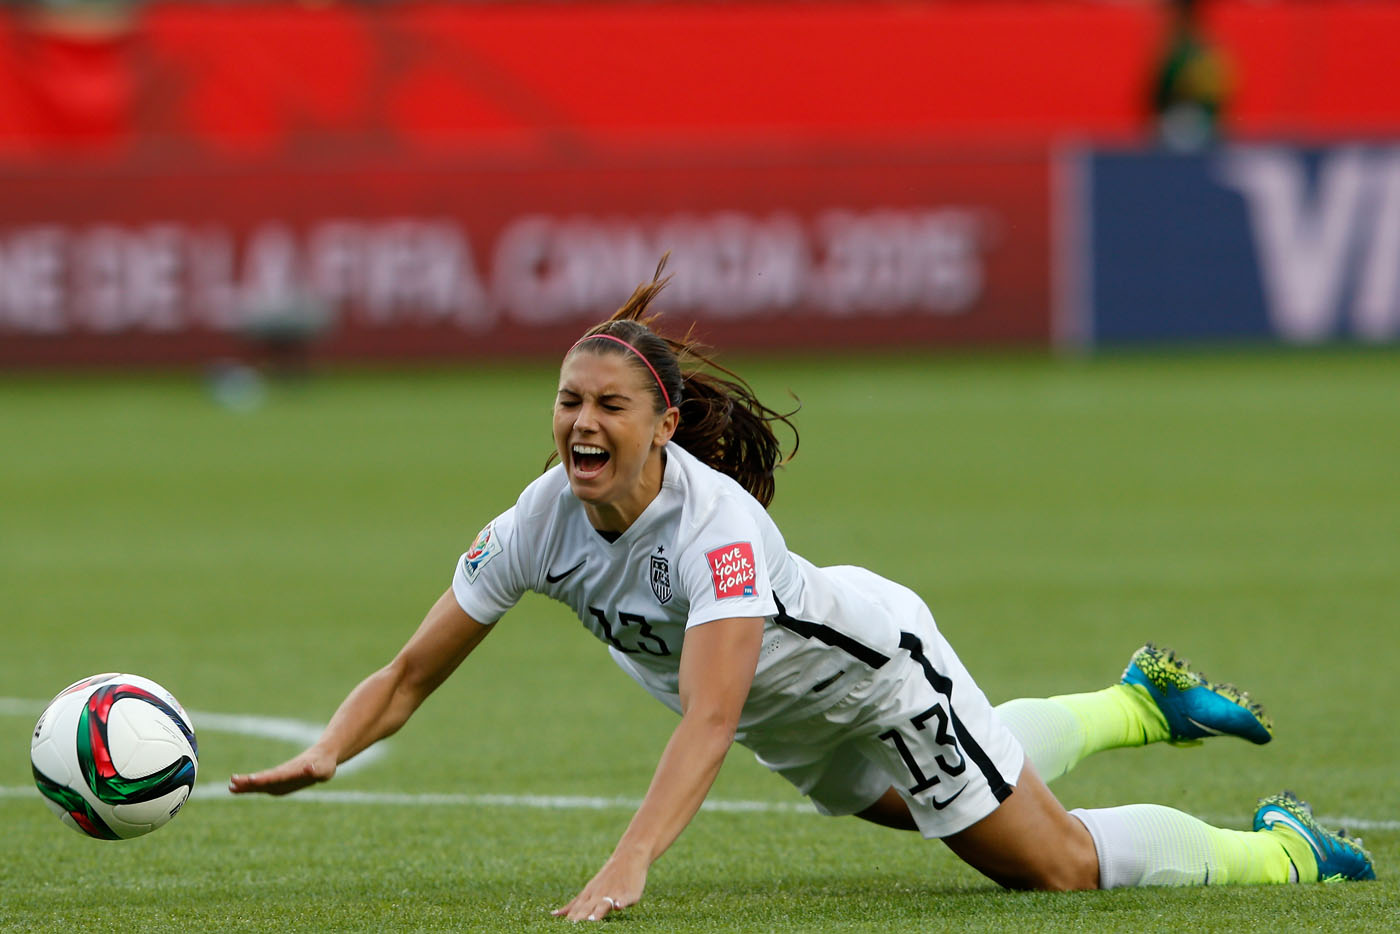 U.S. moves to quarterfinals after 2-0 win over Colombia